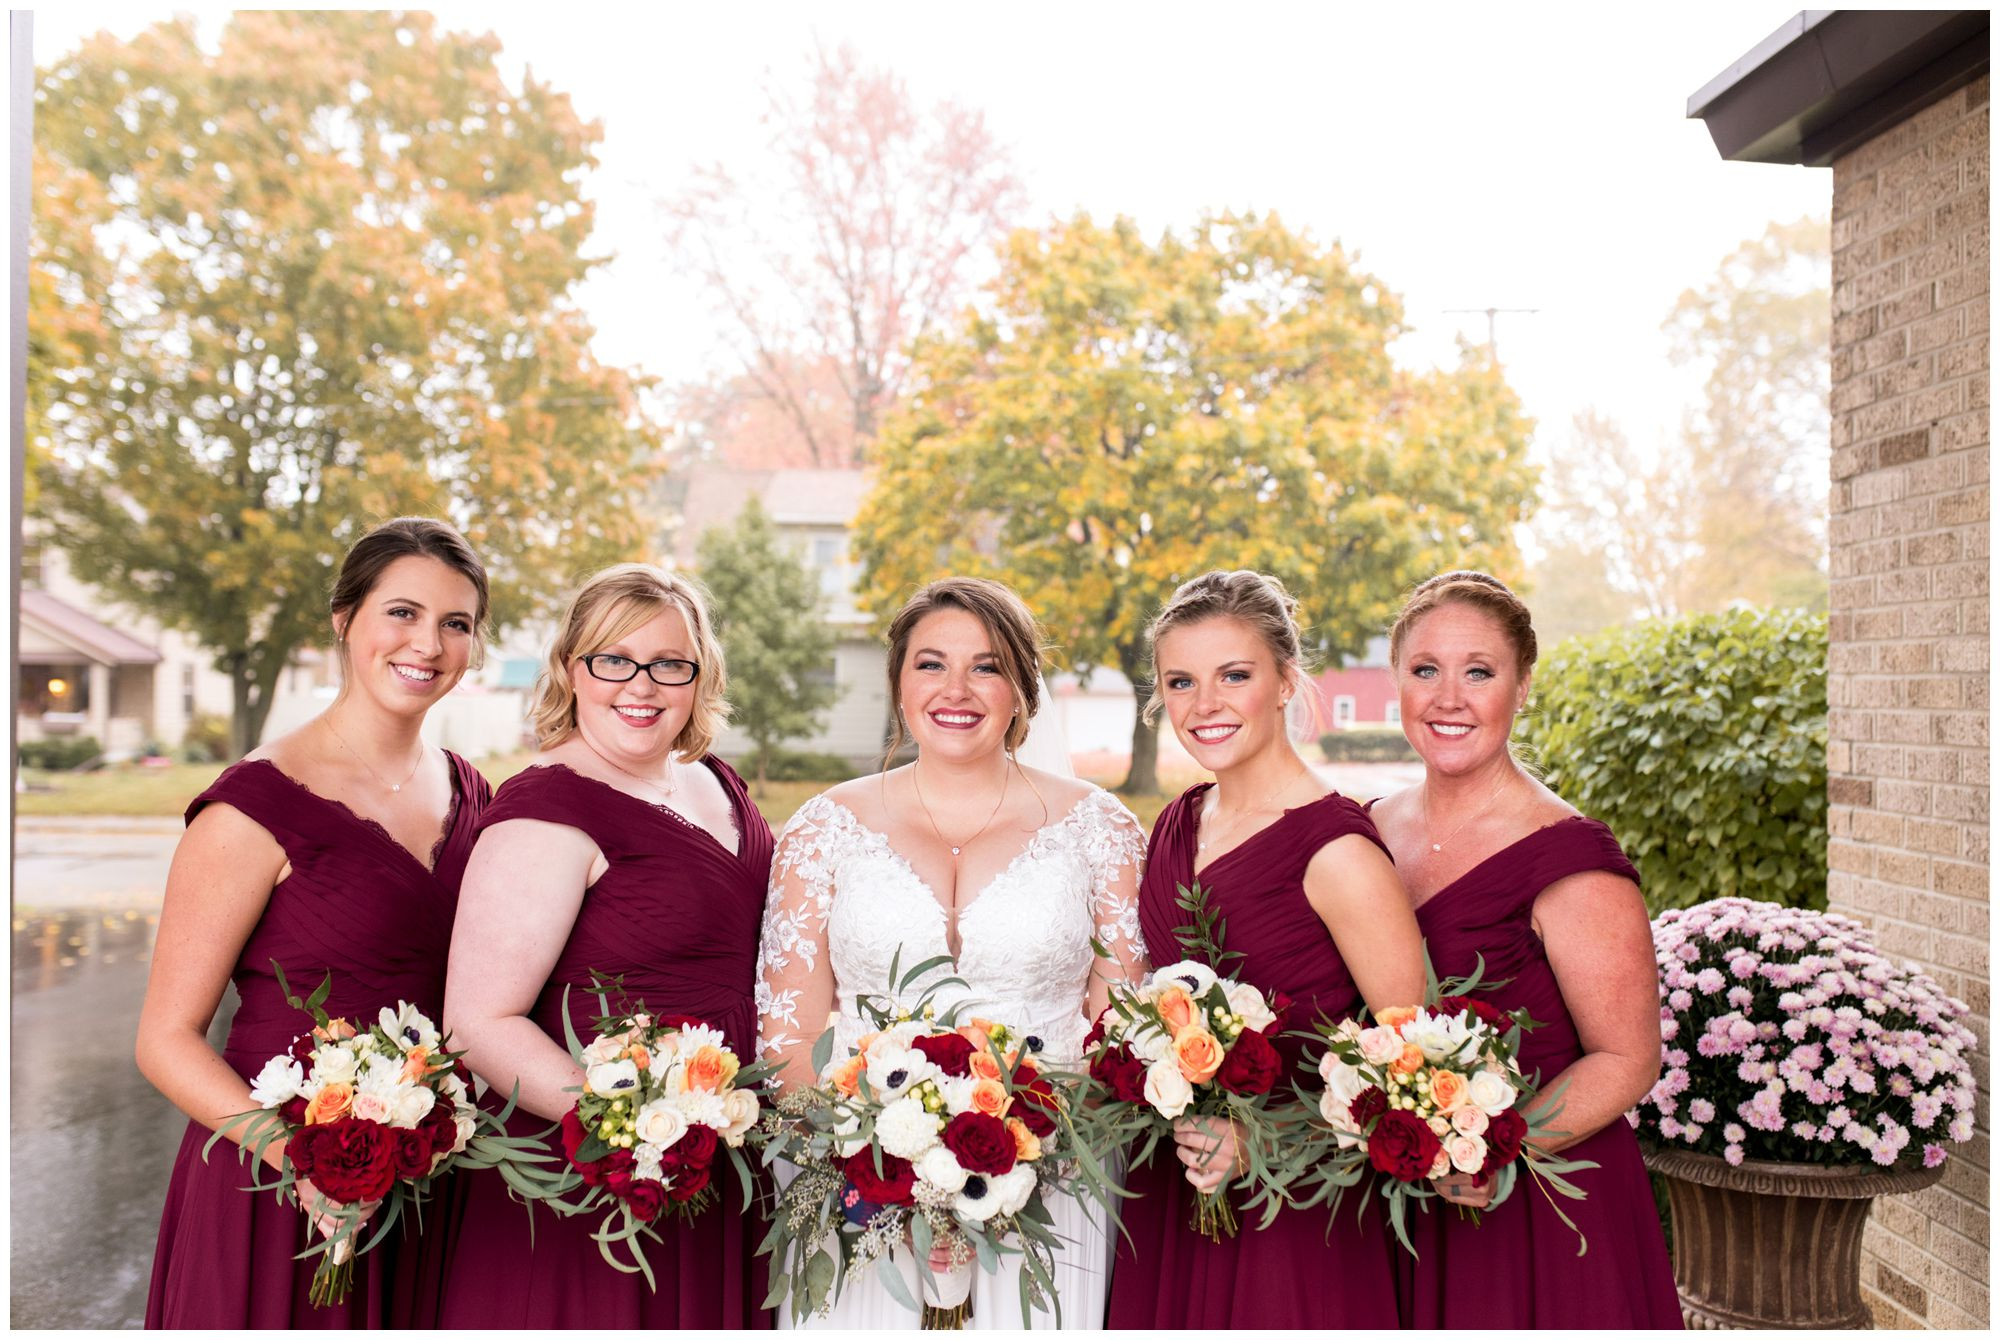 bride with bridesmaids before wedding ceremony in Decatur Indiana